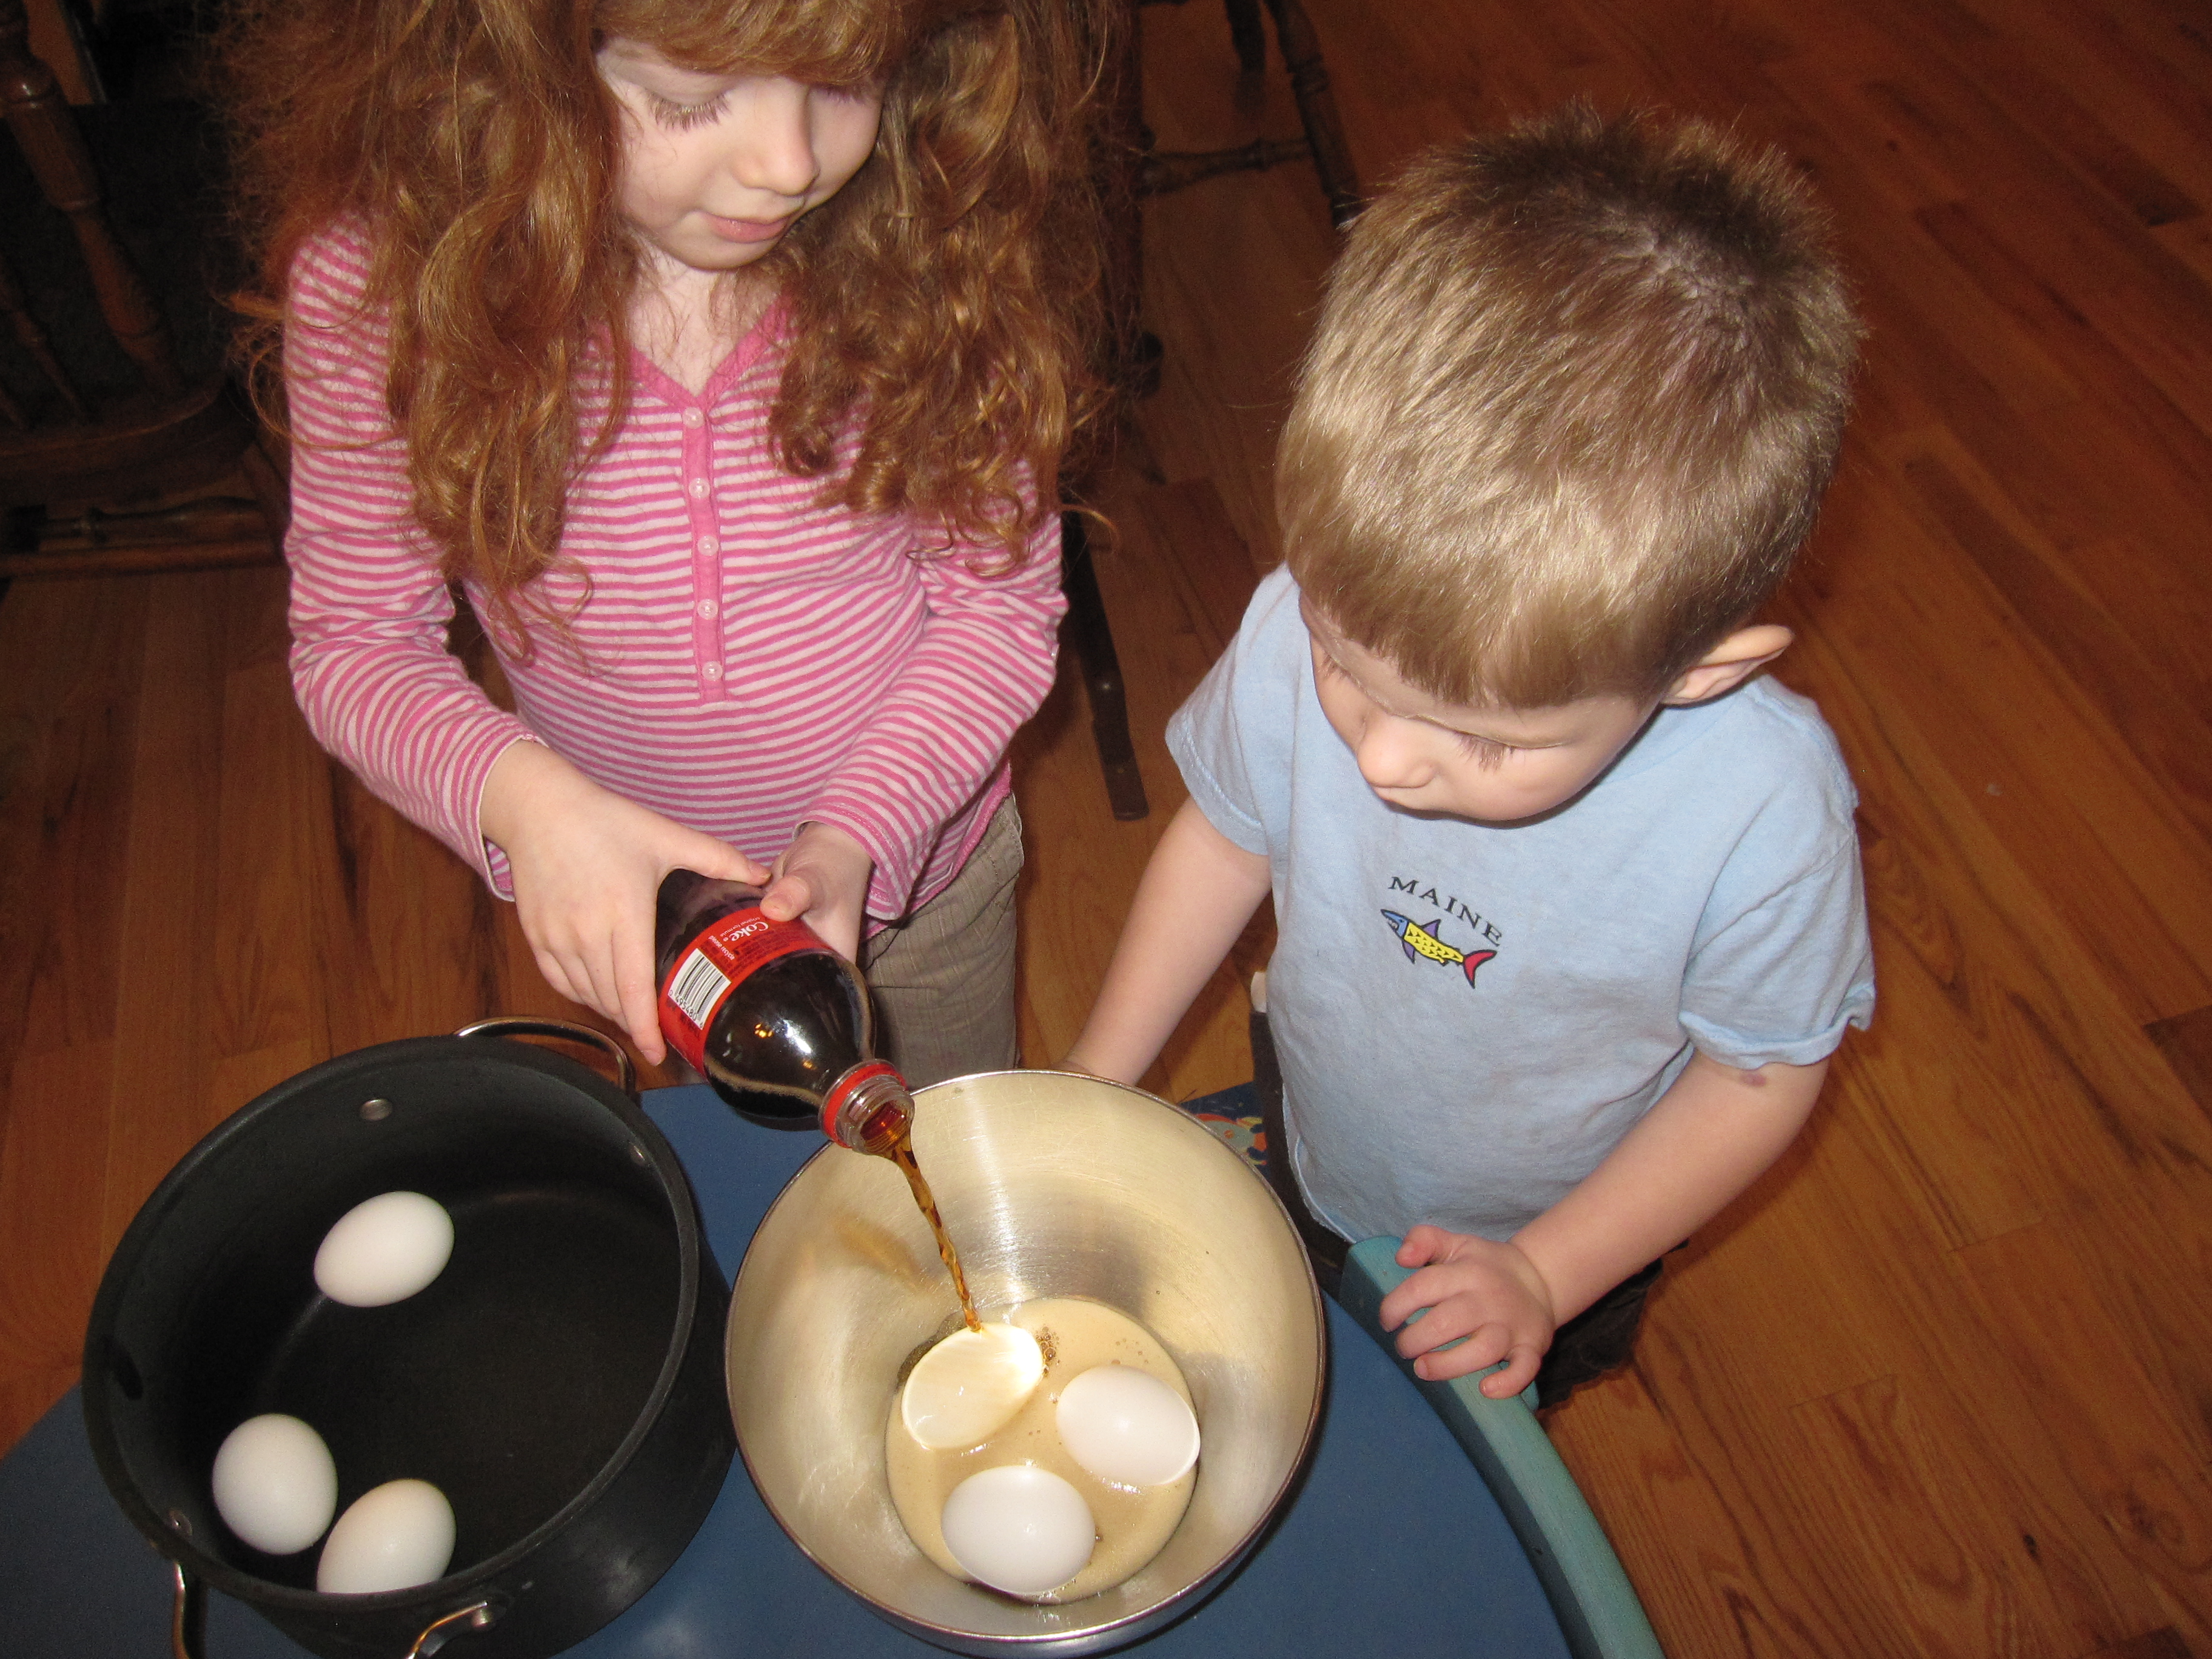 The Soda And Egg Brushing Experiment